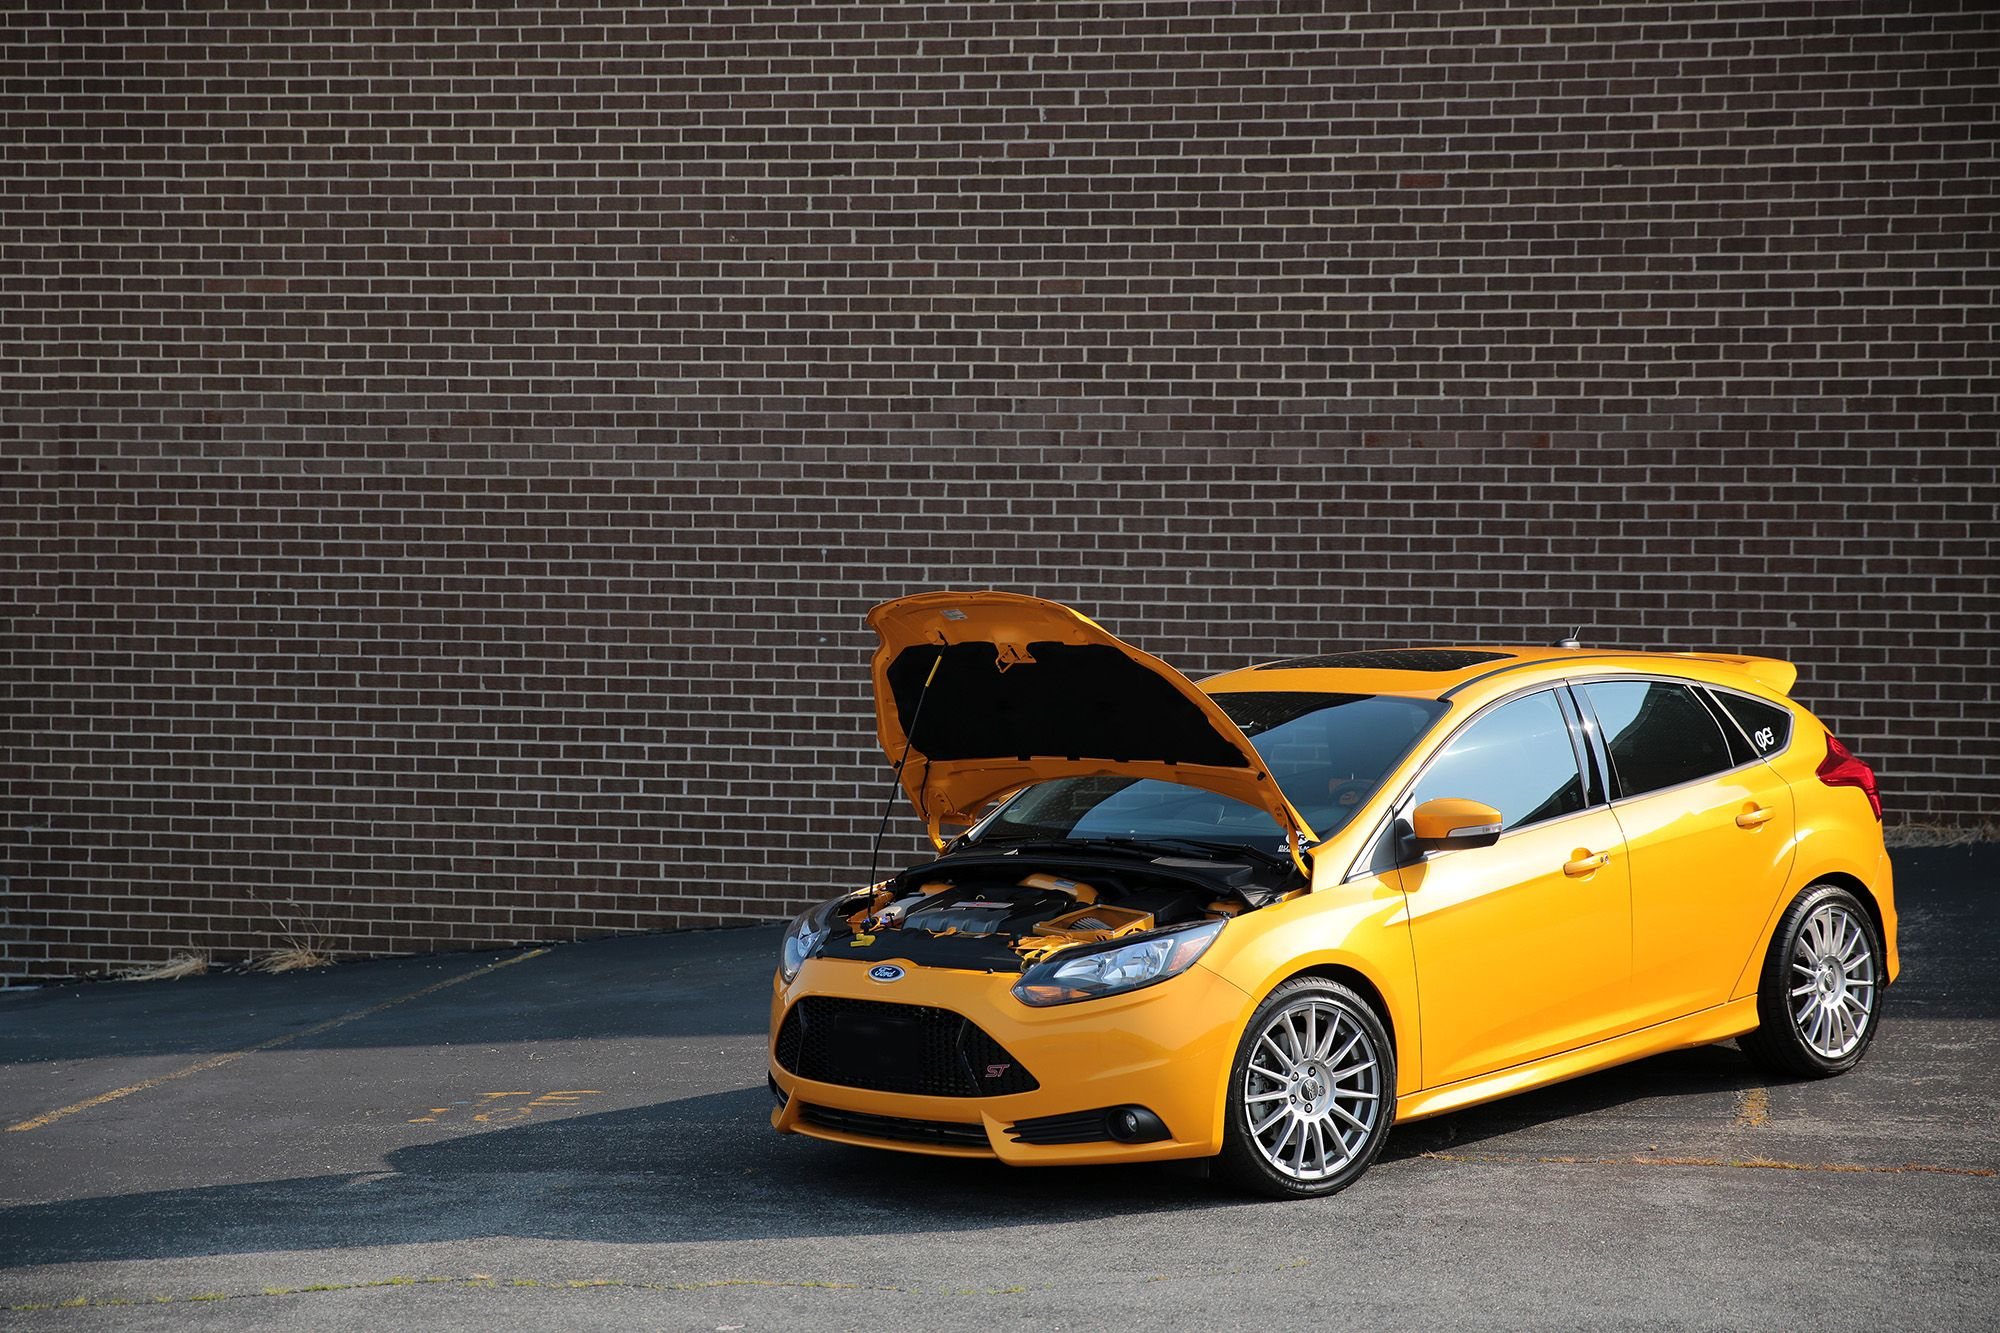 Ford Focus St Mk3 In Yellow Color Tangerine Scream Ford Focus St Ford Focus Ford